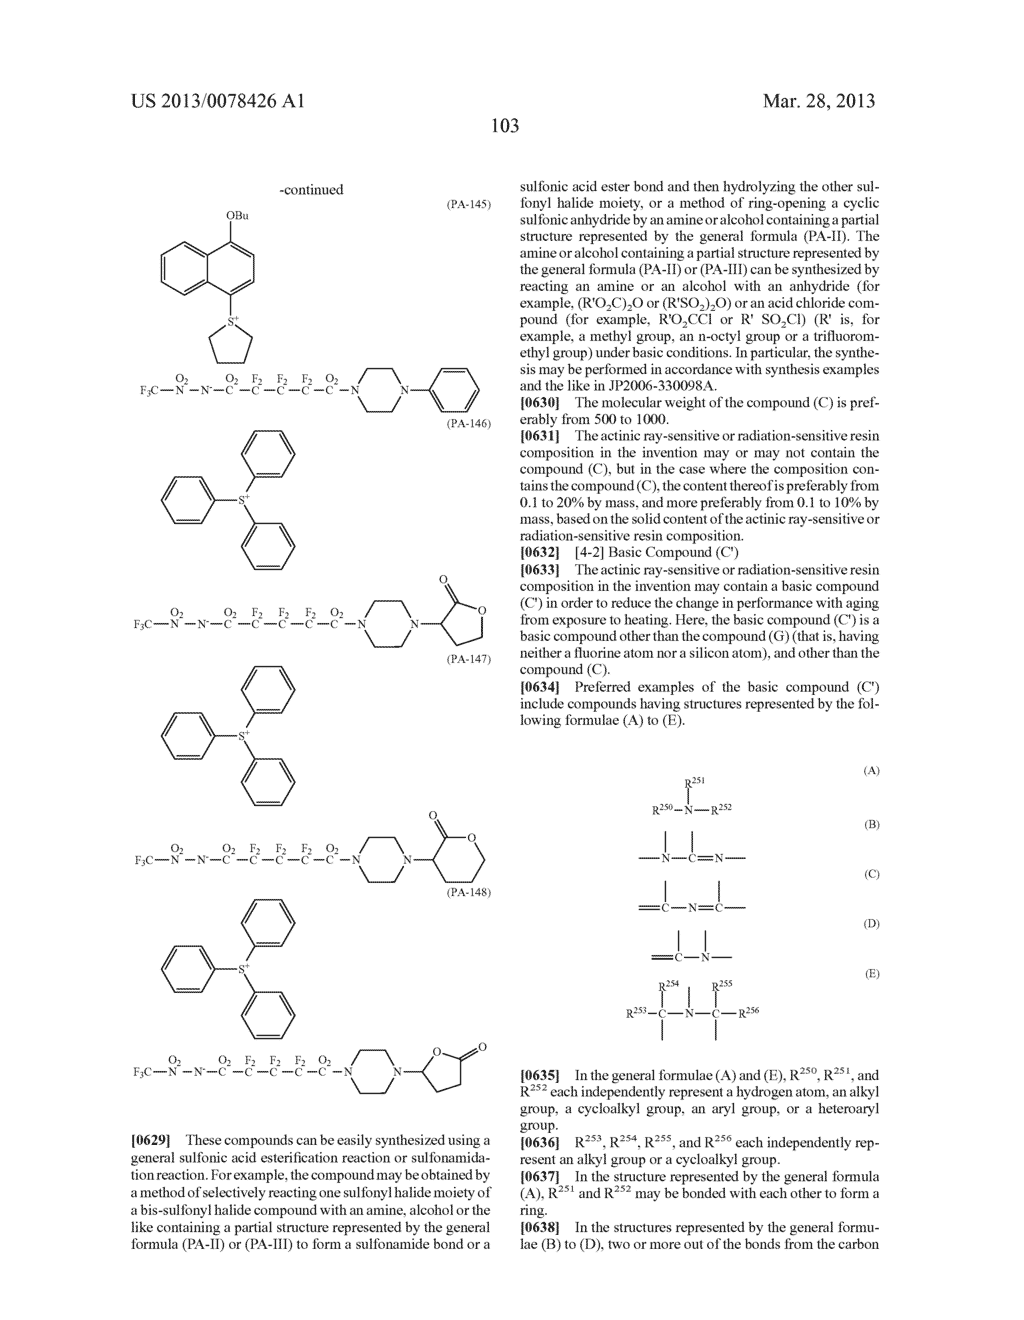 ACTINIC RAY-SENSITIVE OR RADIATION-SENSITIVE RESIN COMPOSITION, AND RESIST     FILM, PATTERN FORMING METHOD, METHOD FOR PREPARING ELECTRONIC DEVICE, AND     ELECTRONIC DEVICE, EACH USING THE SAME - diagram, schematic, and image 104